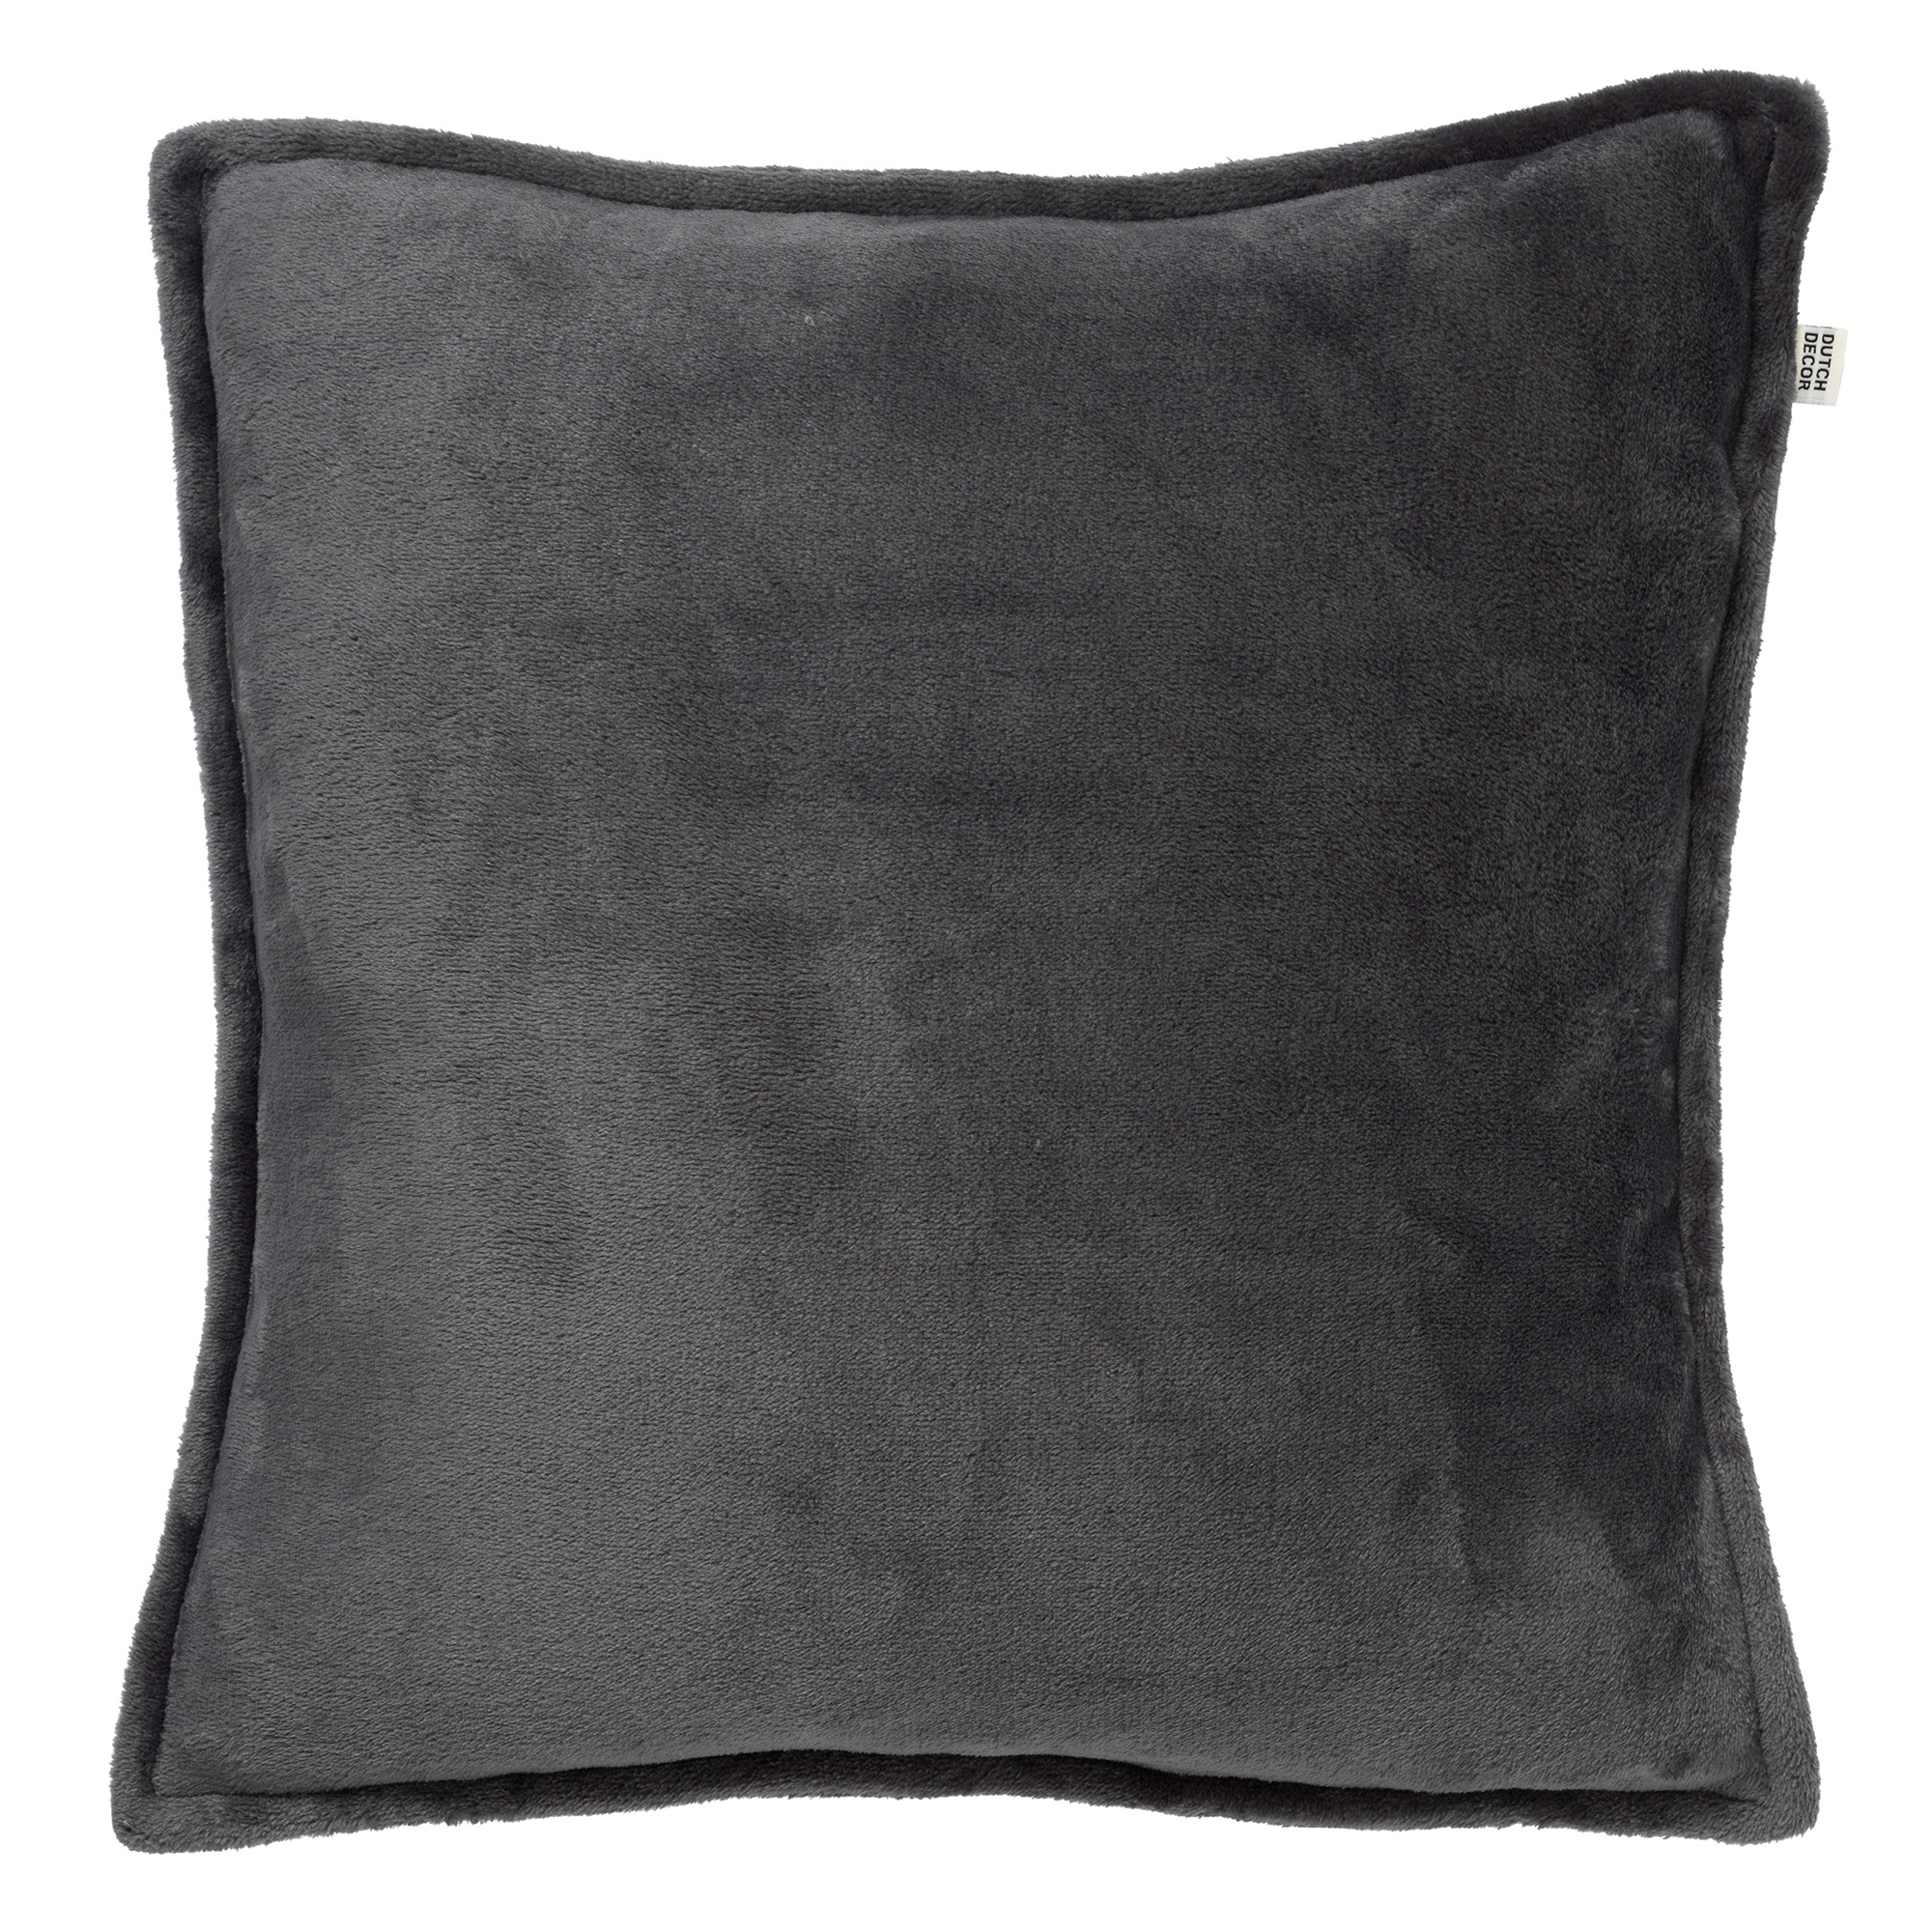 CILLY - Sierkussen van fleece Charcoal Gray 45x45 cm